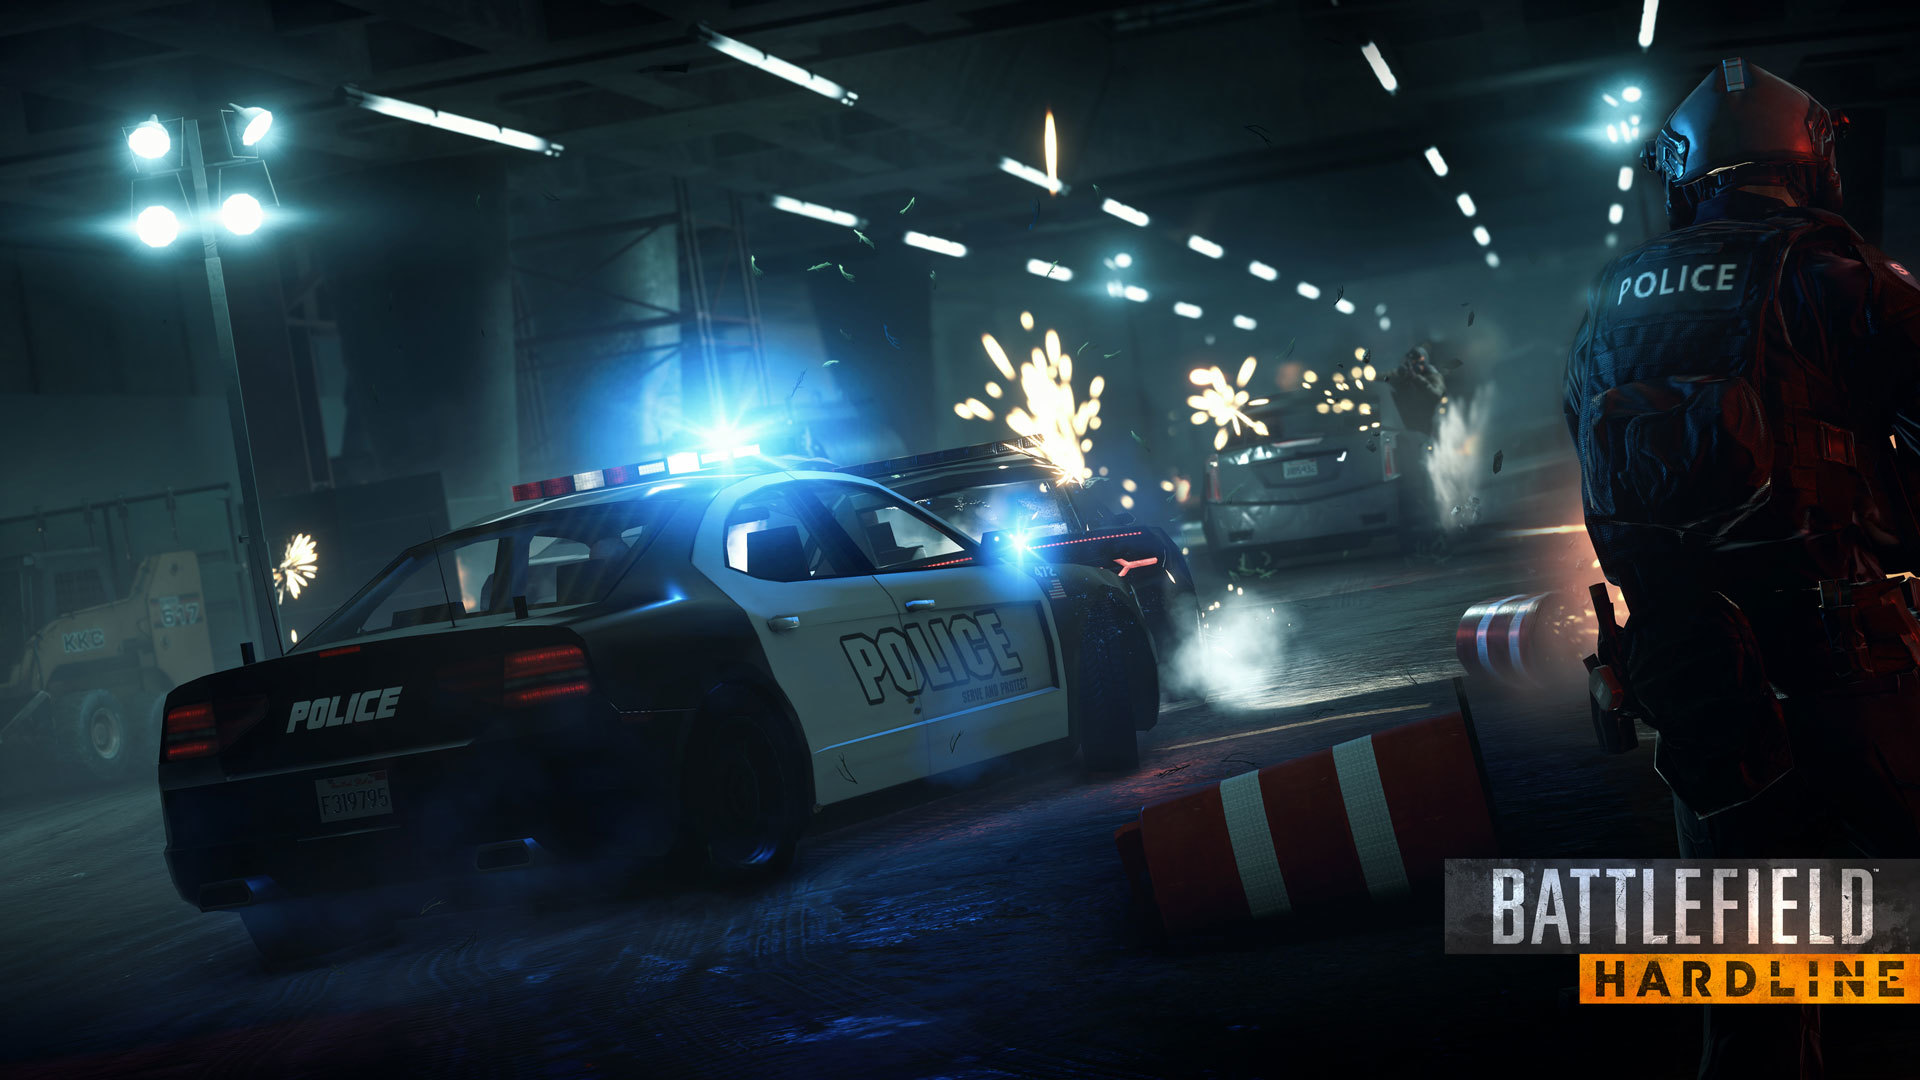 battlefield hardline wallpaper